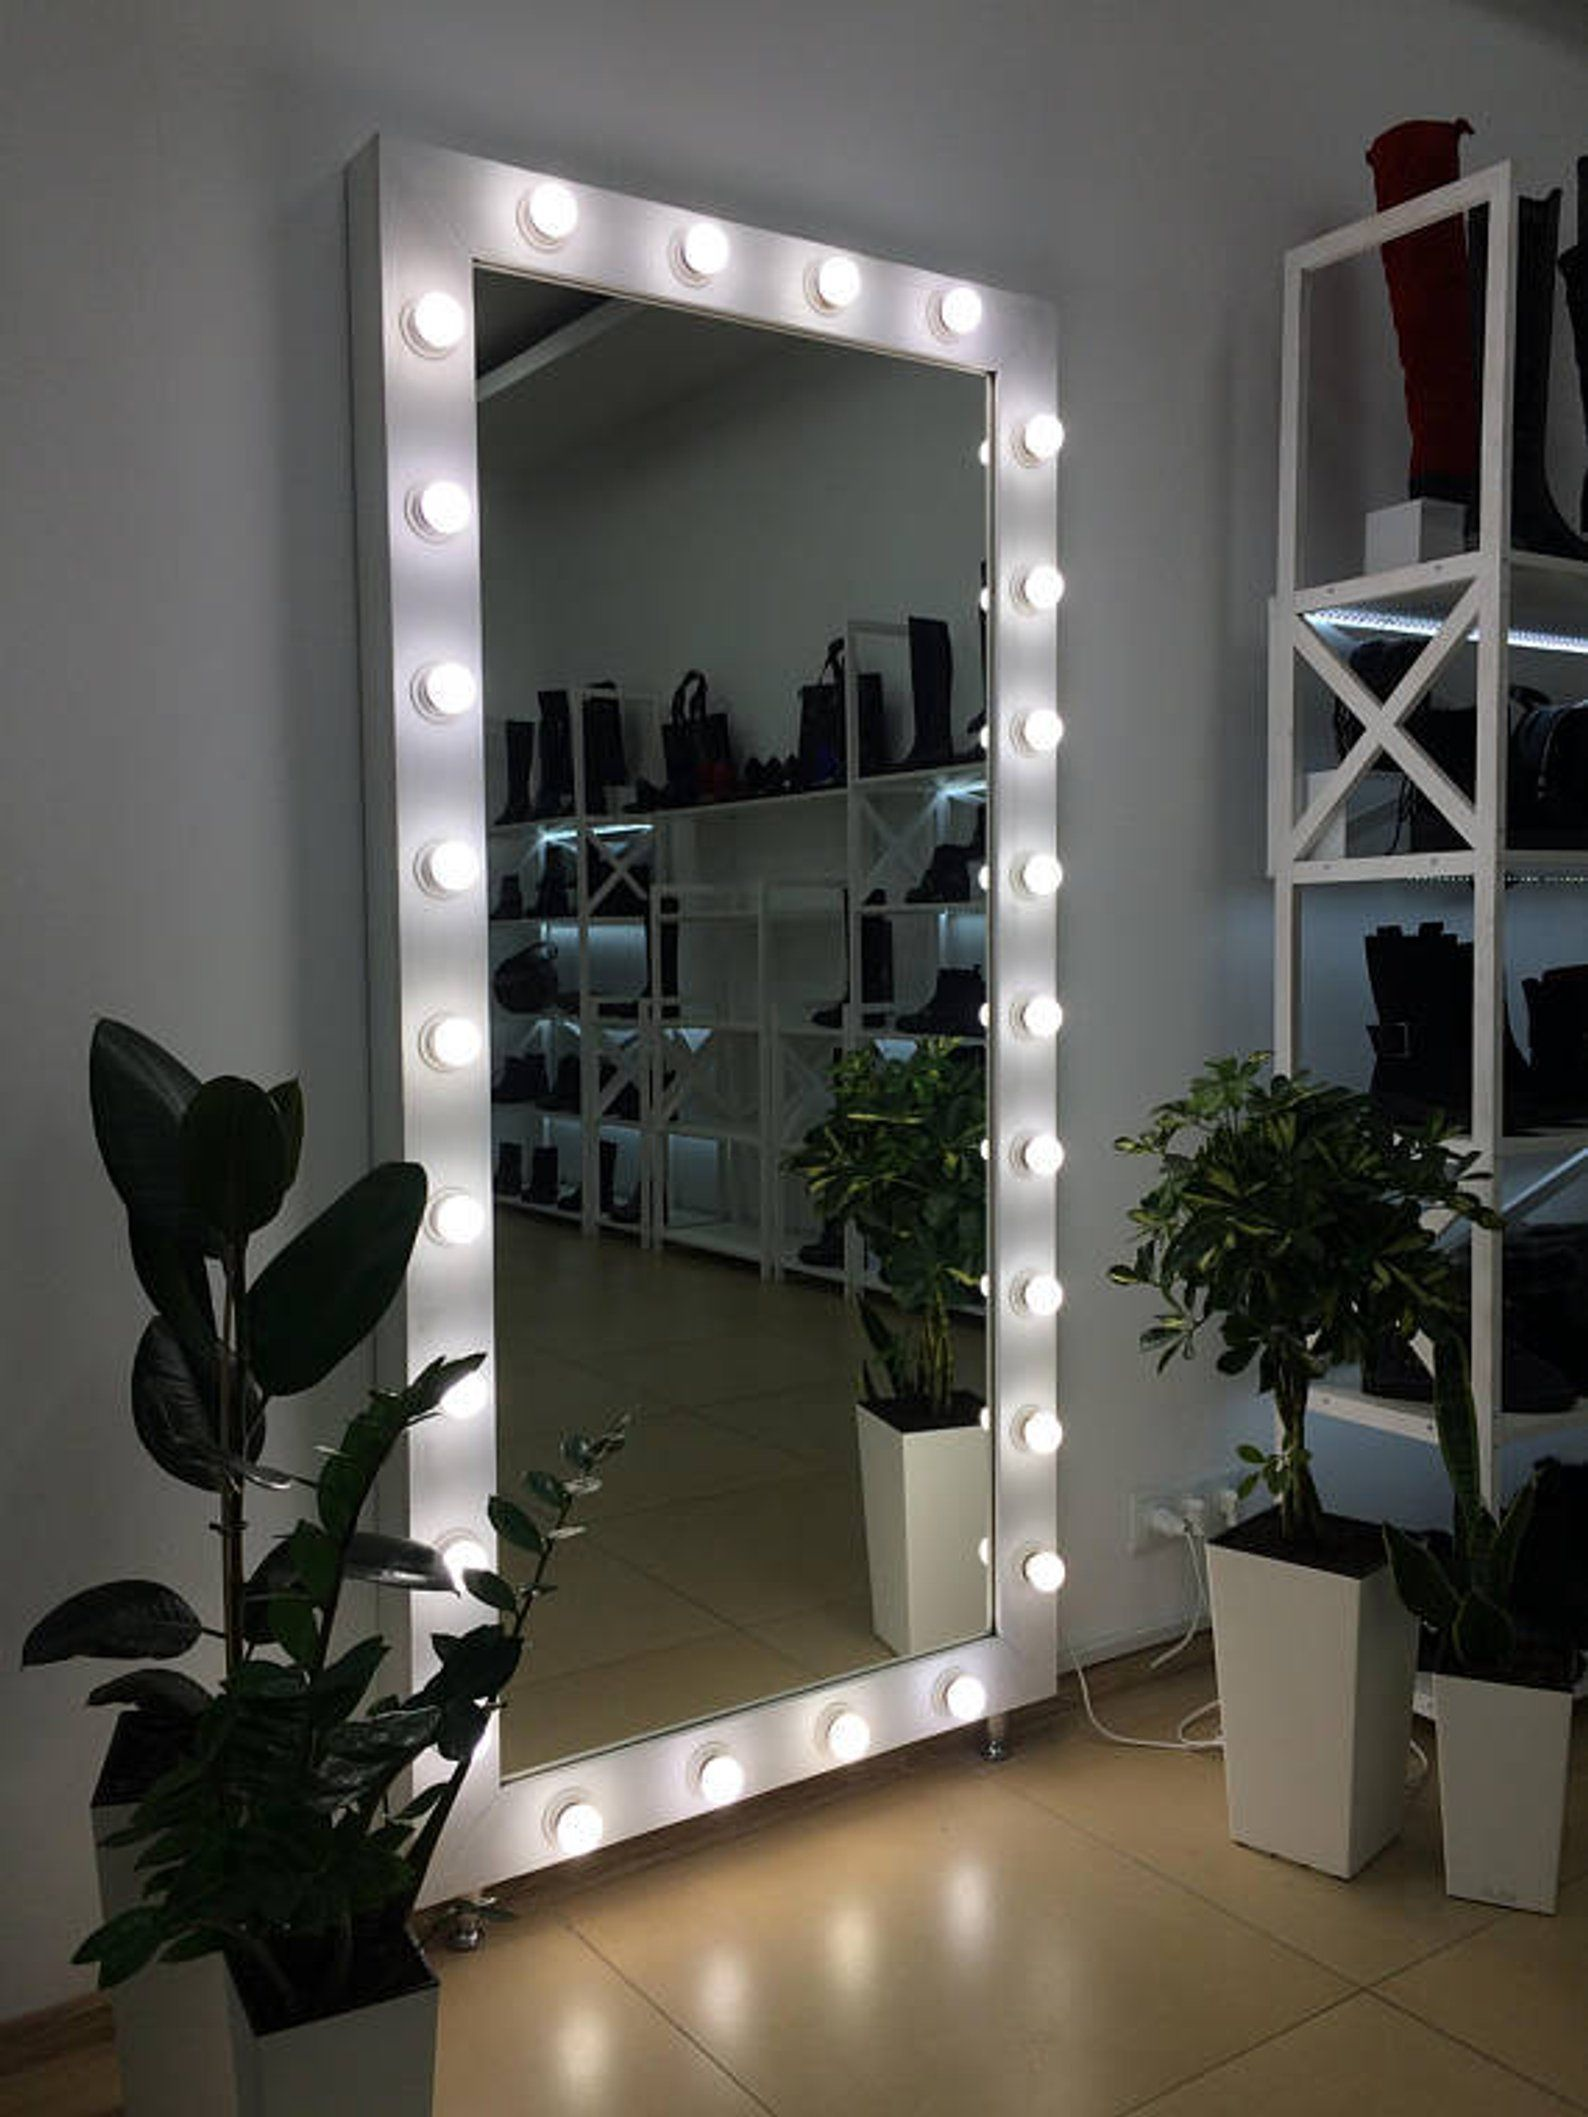 Showroom Mirror With Lights Mirror For Showroom With Lights Etsy Hollywood Mirror With Lights Beauty Room Room Inspiration